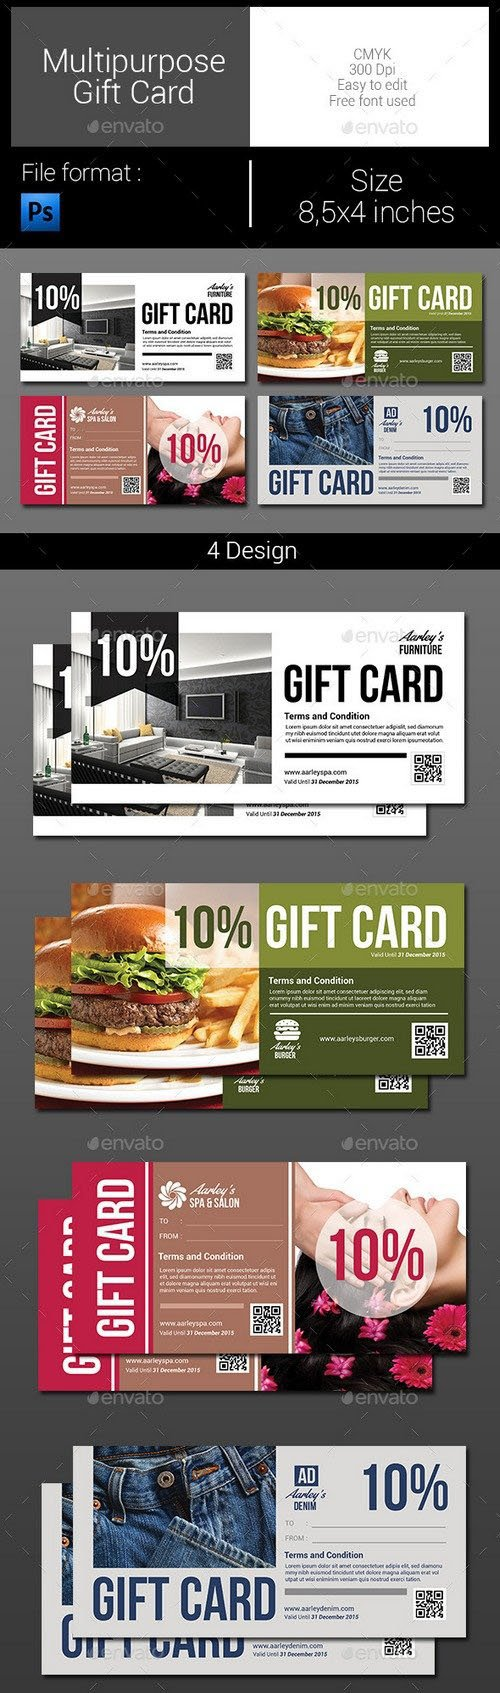 Graphicriver - Multipurpose Gift Card 9966465